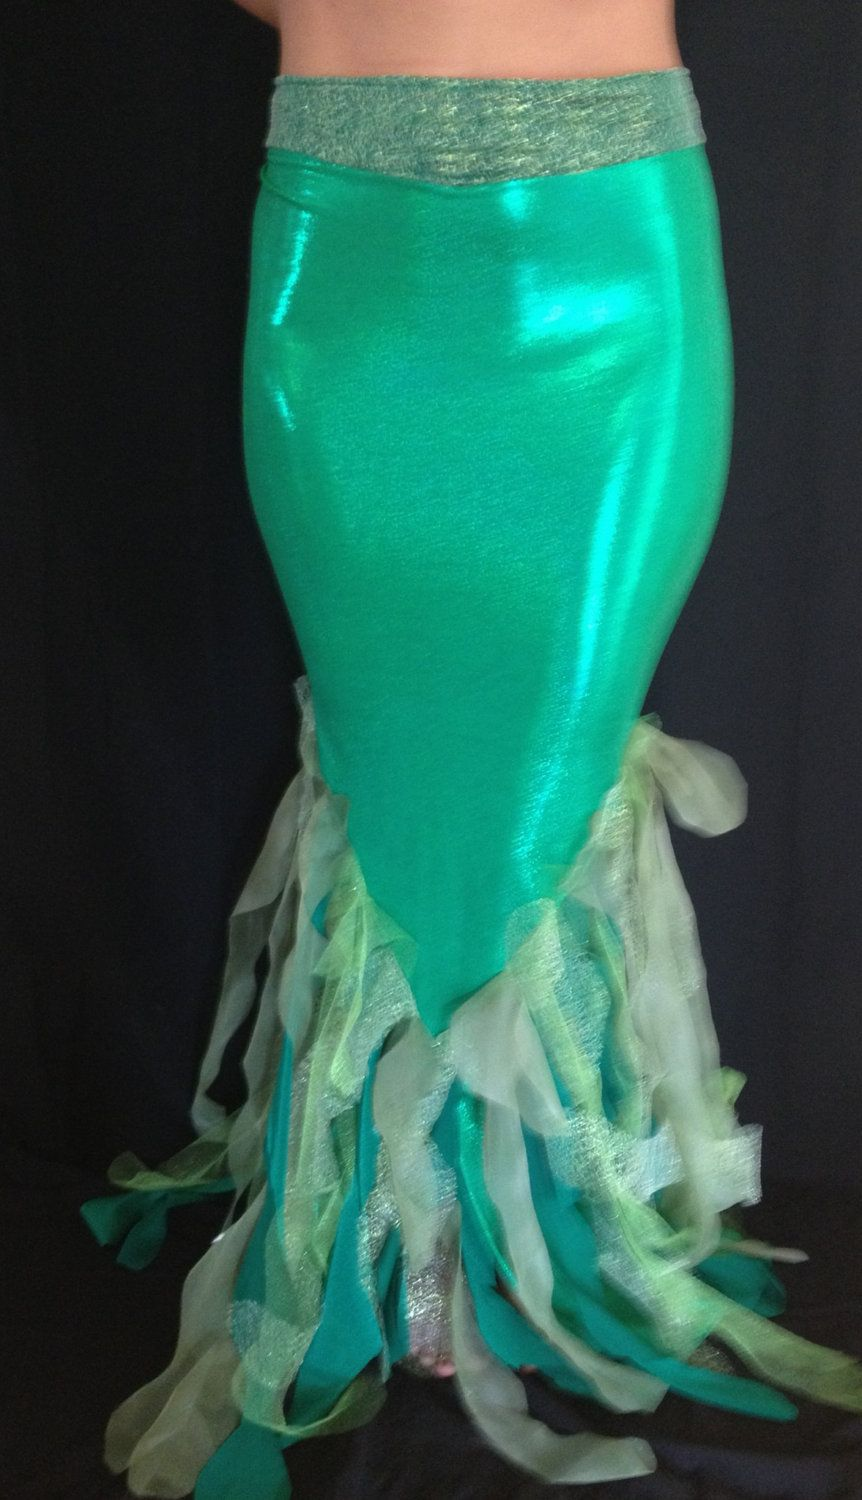 mermaid tail costume - Google Search